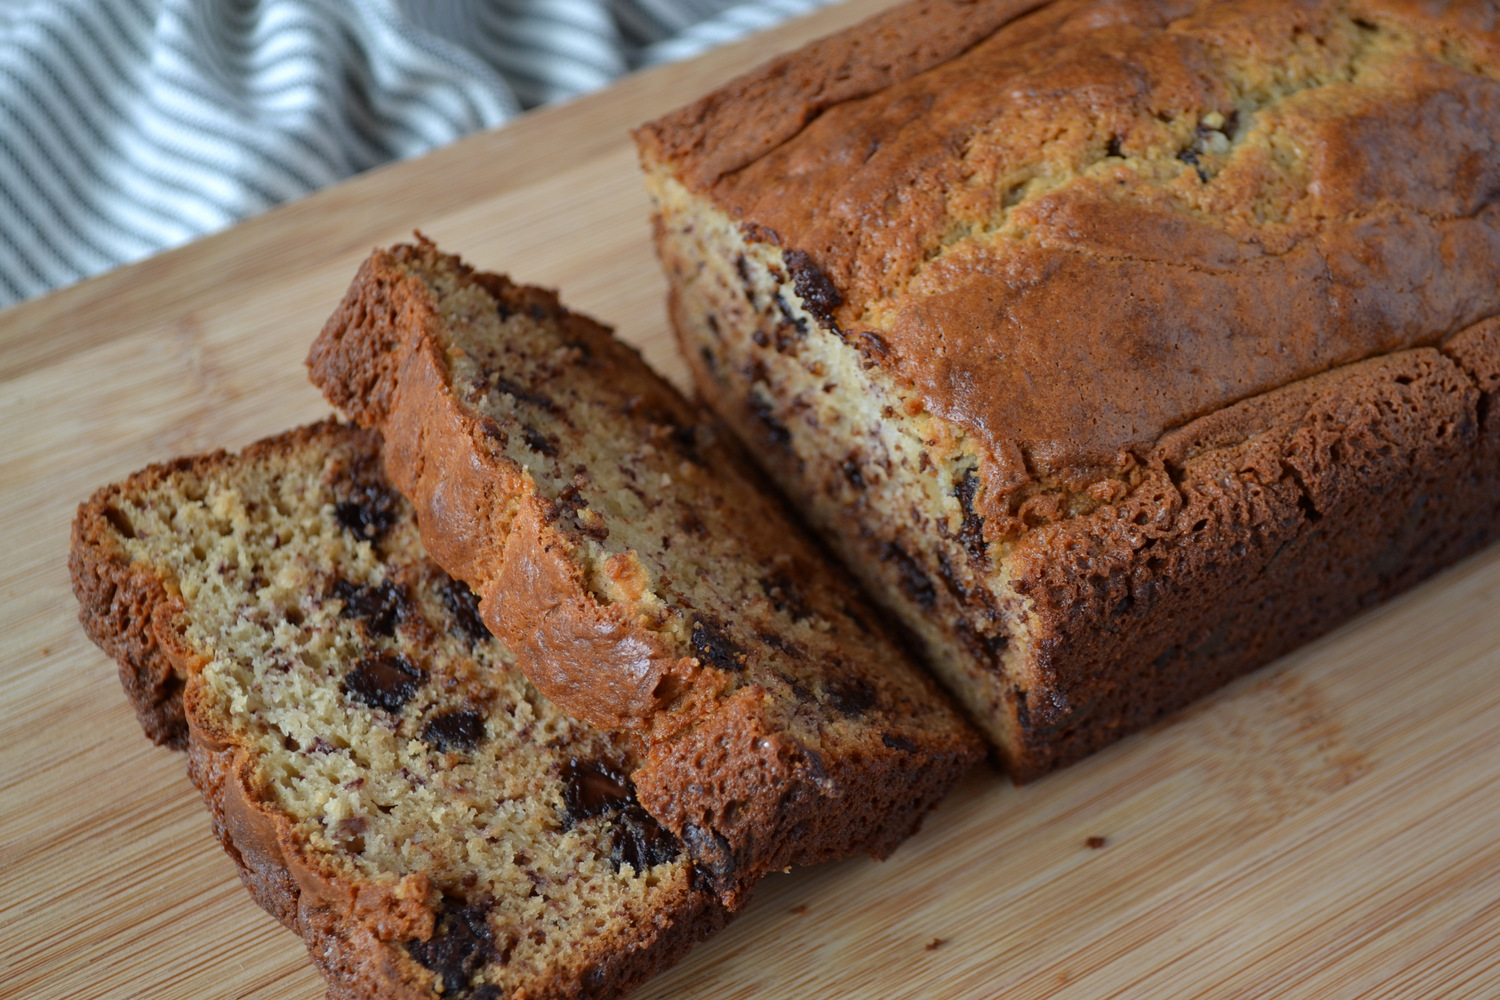 Kk test kitchen secret recipe club judys chocolate chip banana bread for secret recipe club this month i was assigned the blog my judy the foodie which is where shari shares her adventures in cooking her mother judys forumfinder Choice Image